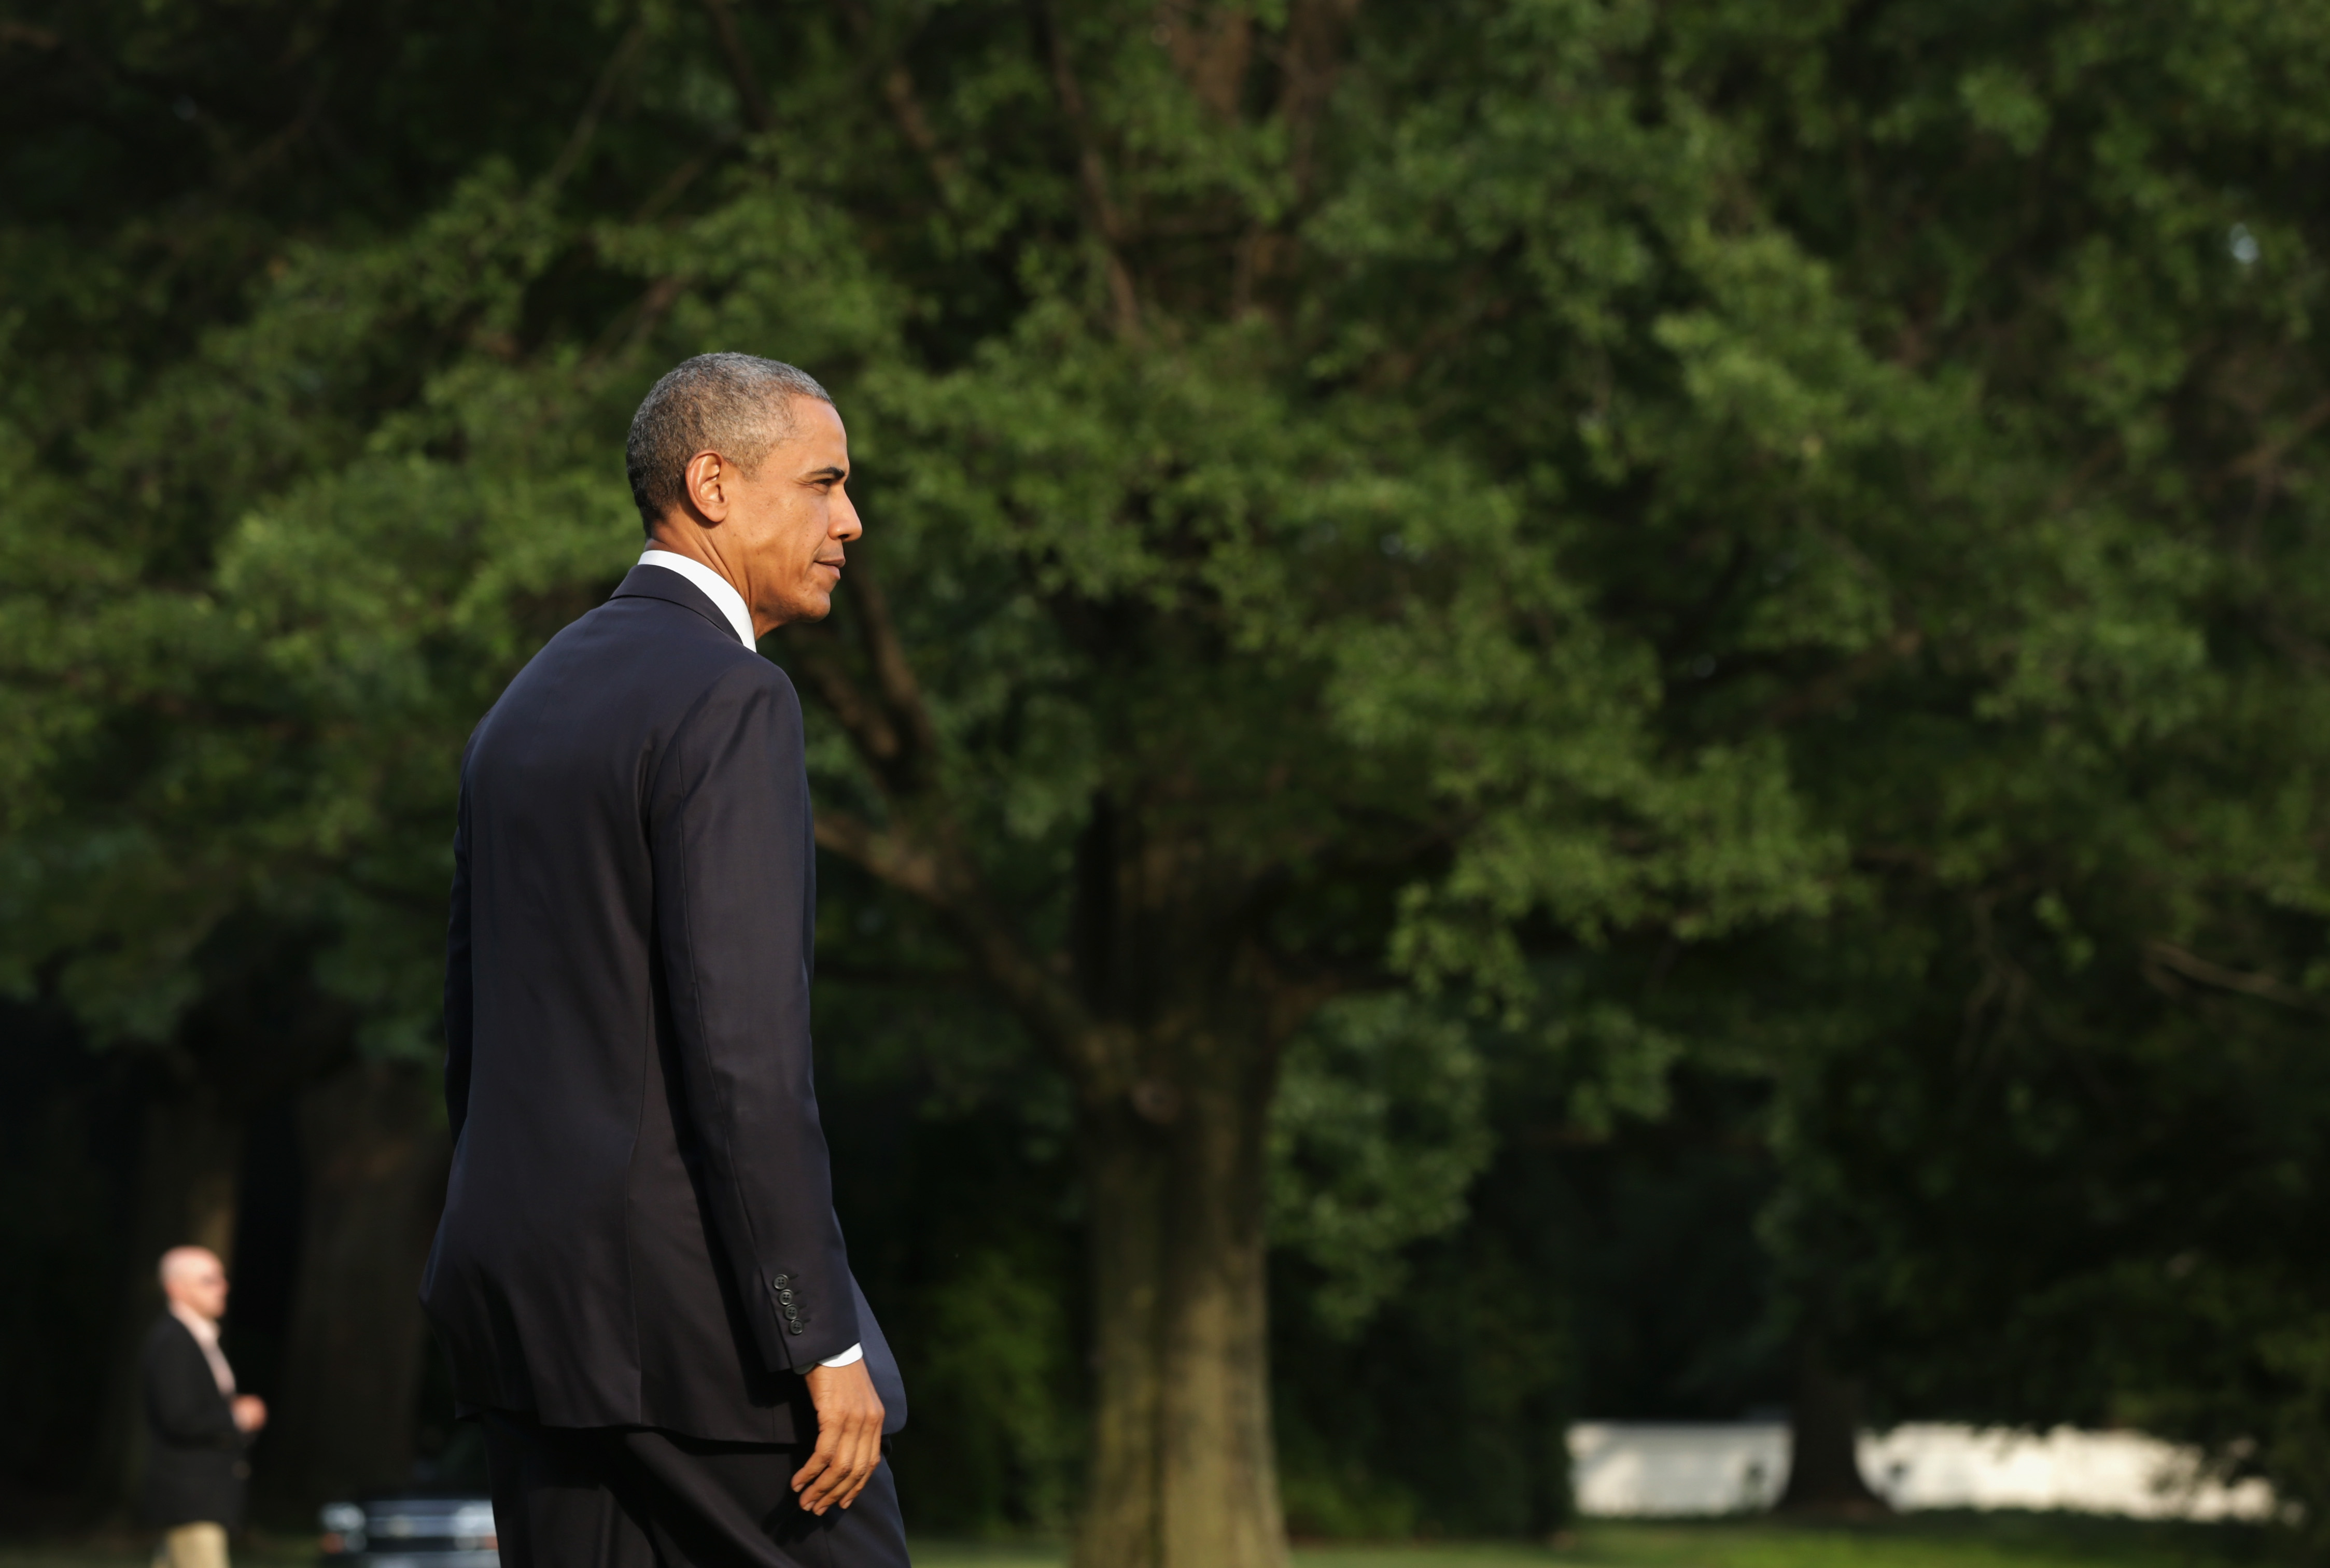 U.S. President Barack Obama walks towards to the Marine One on the South Lawn prior to his departure from the White House July 18, 2014 in Washington, D.C.